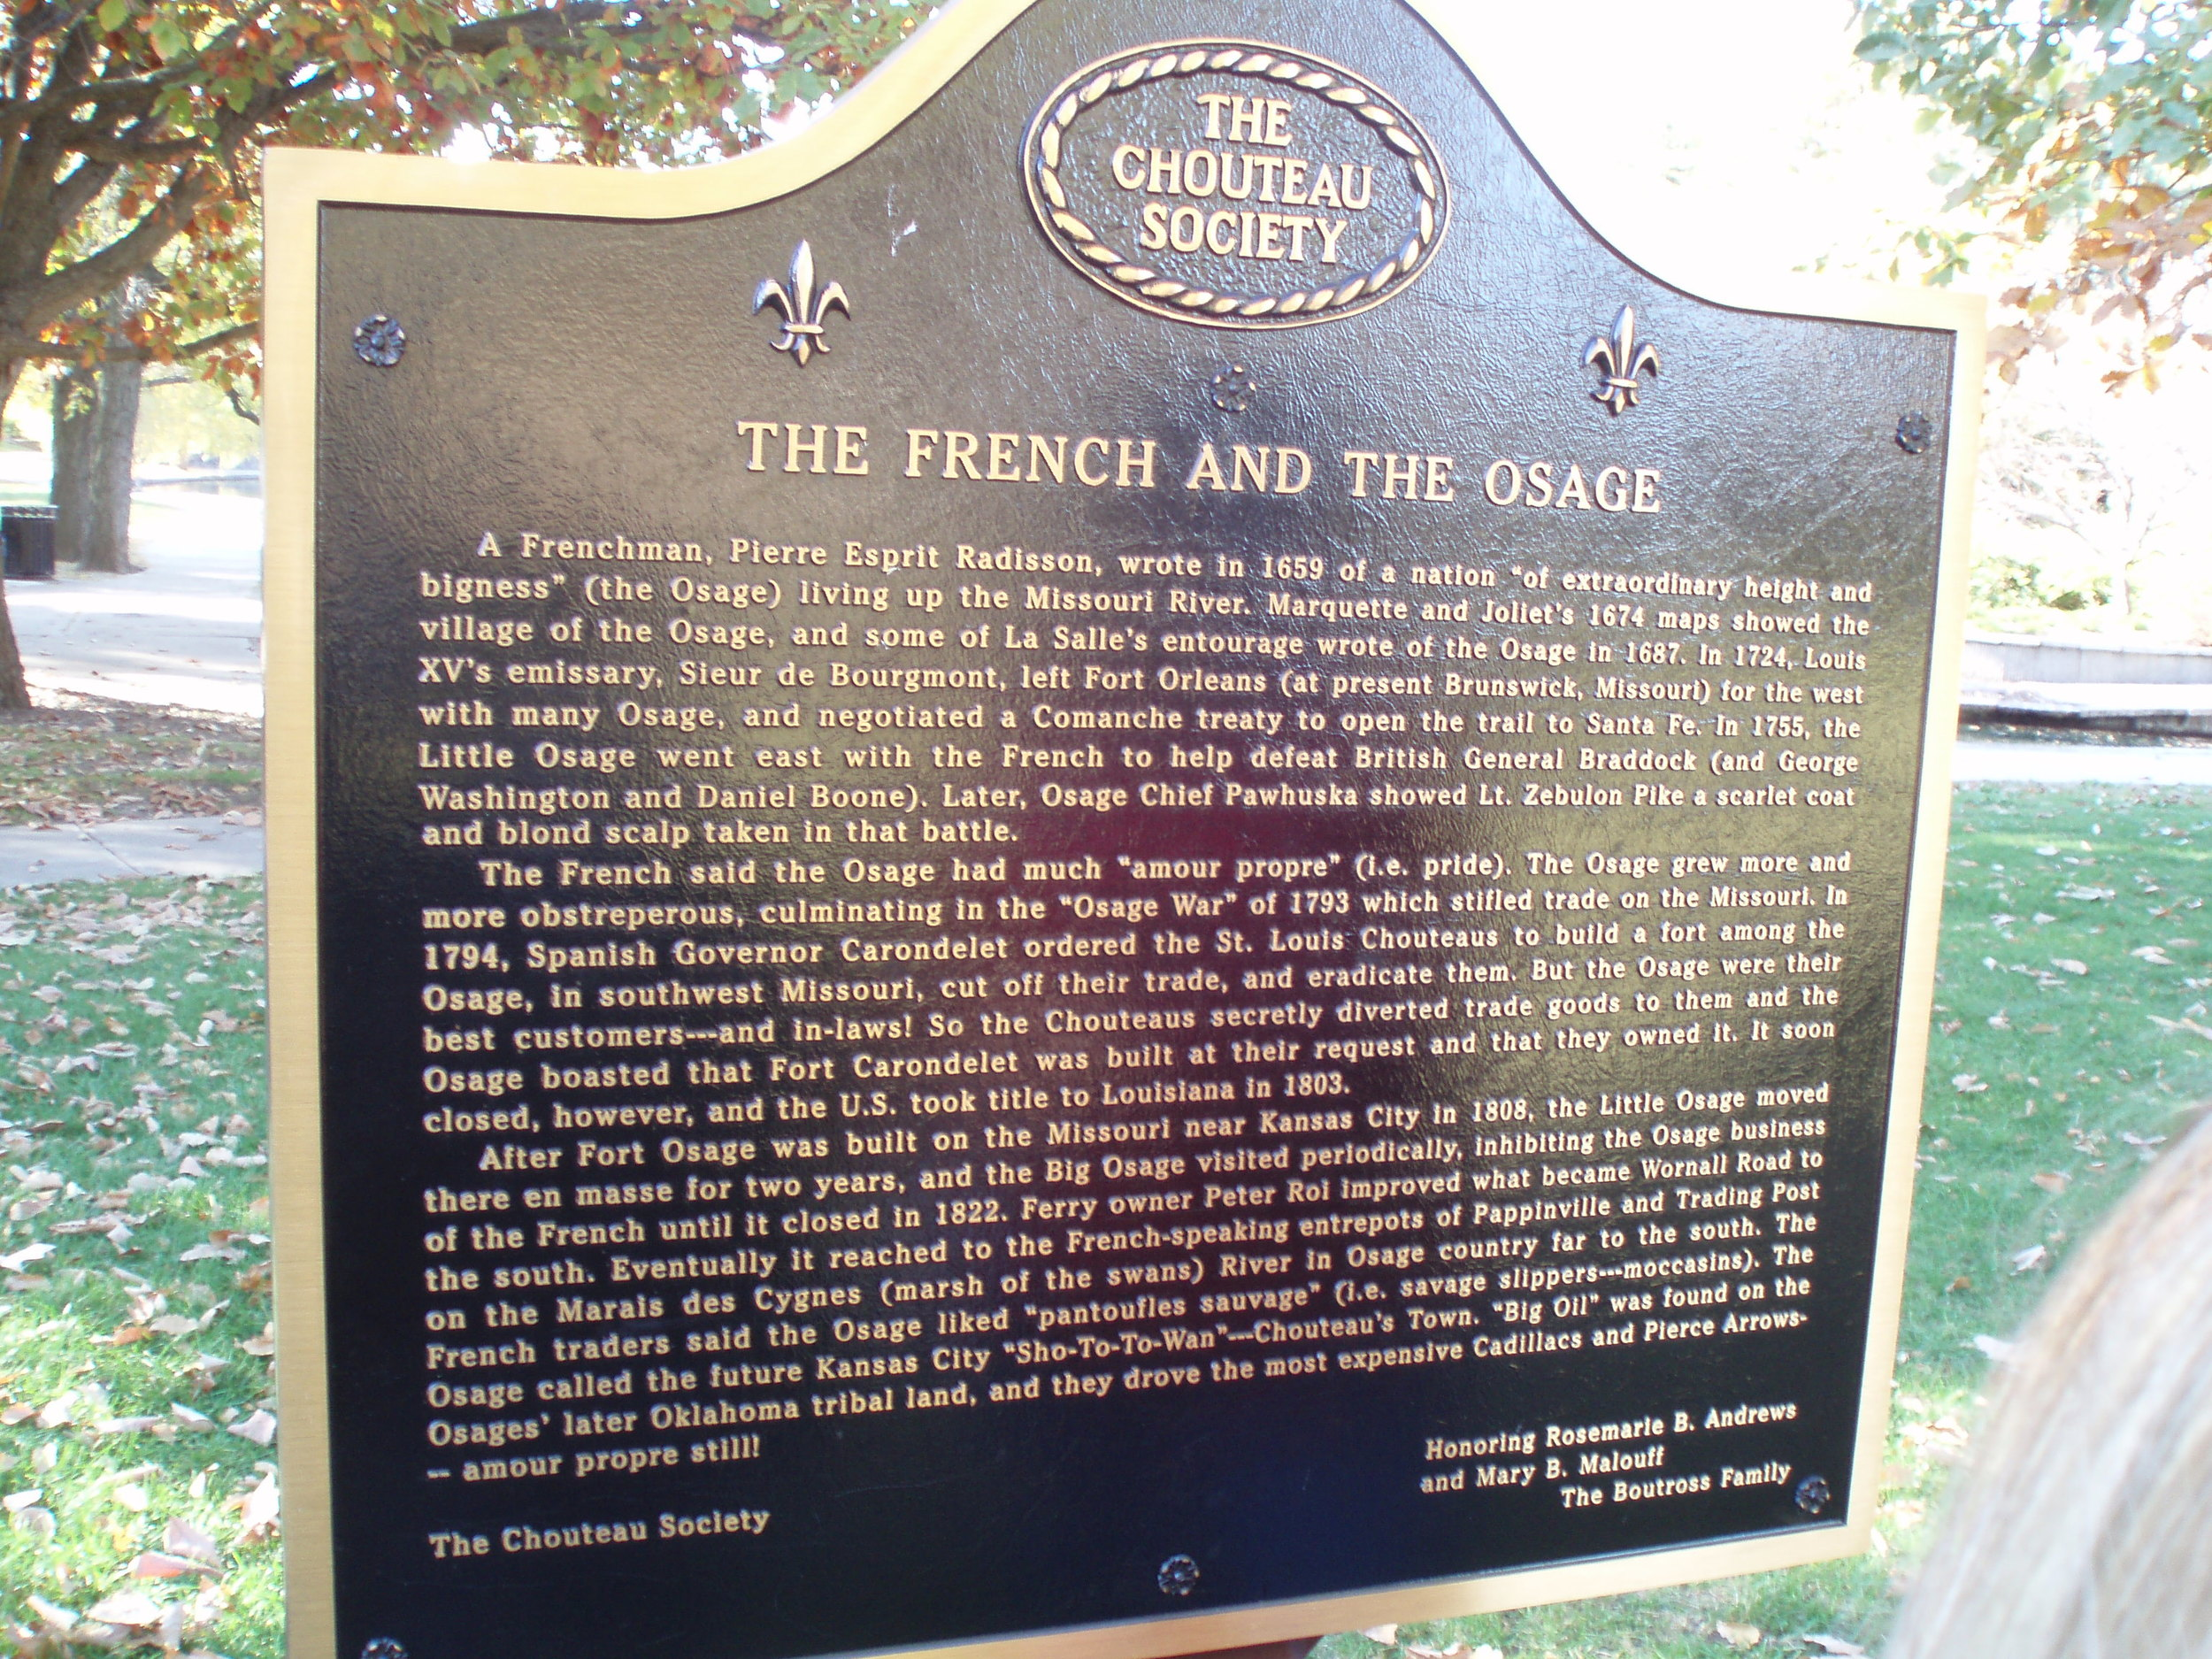 Chouteau Marker No. 11. Located at the Loose Park Lagoon, on Wornall Road south of 51st Street